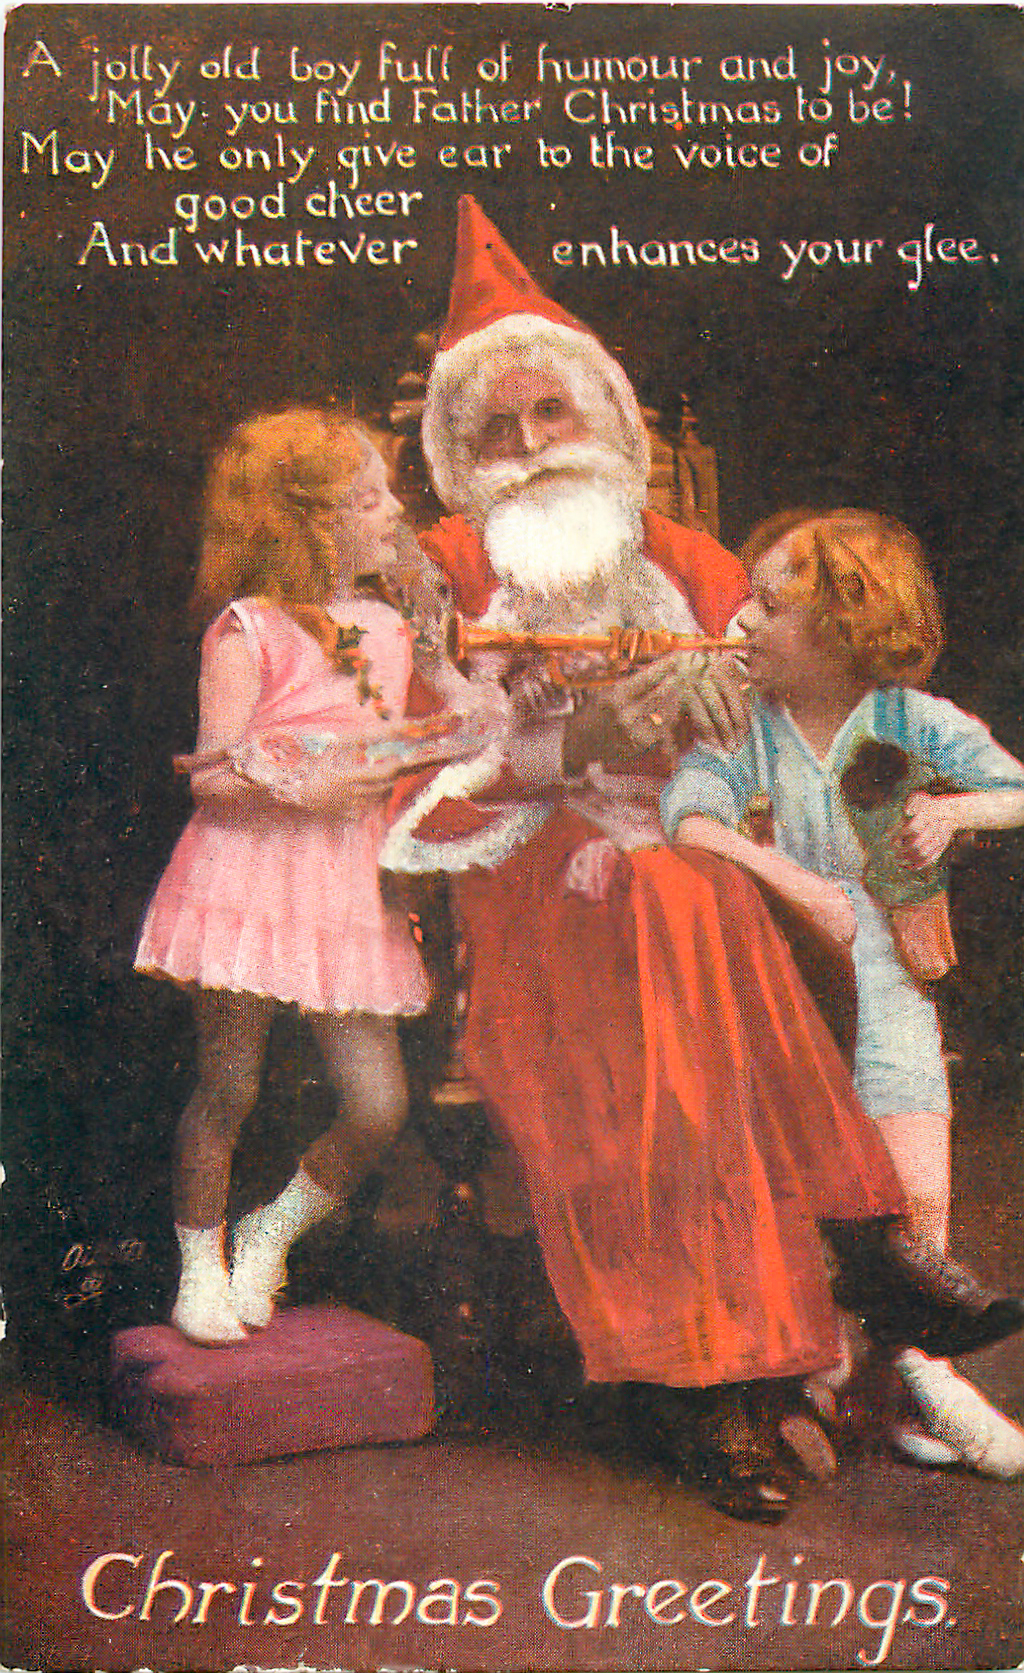 """An English postcard of 1919 epitomises the OED' s definition of Father Christmas as """"the personification of Christmas as a benevolent old man with a flowing white beard, wearing a red sleeved gown and hood trimmed with white fur, and carrying a sack of Christmas presents"""". Source: Wikipedia"""